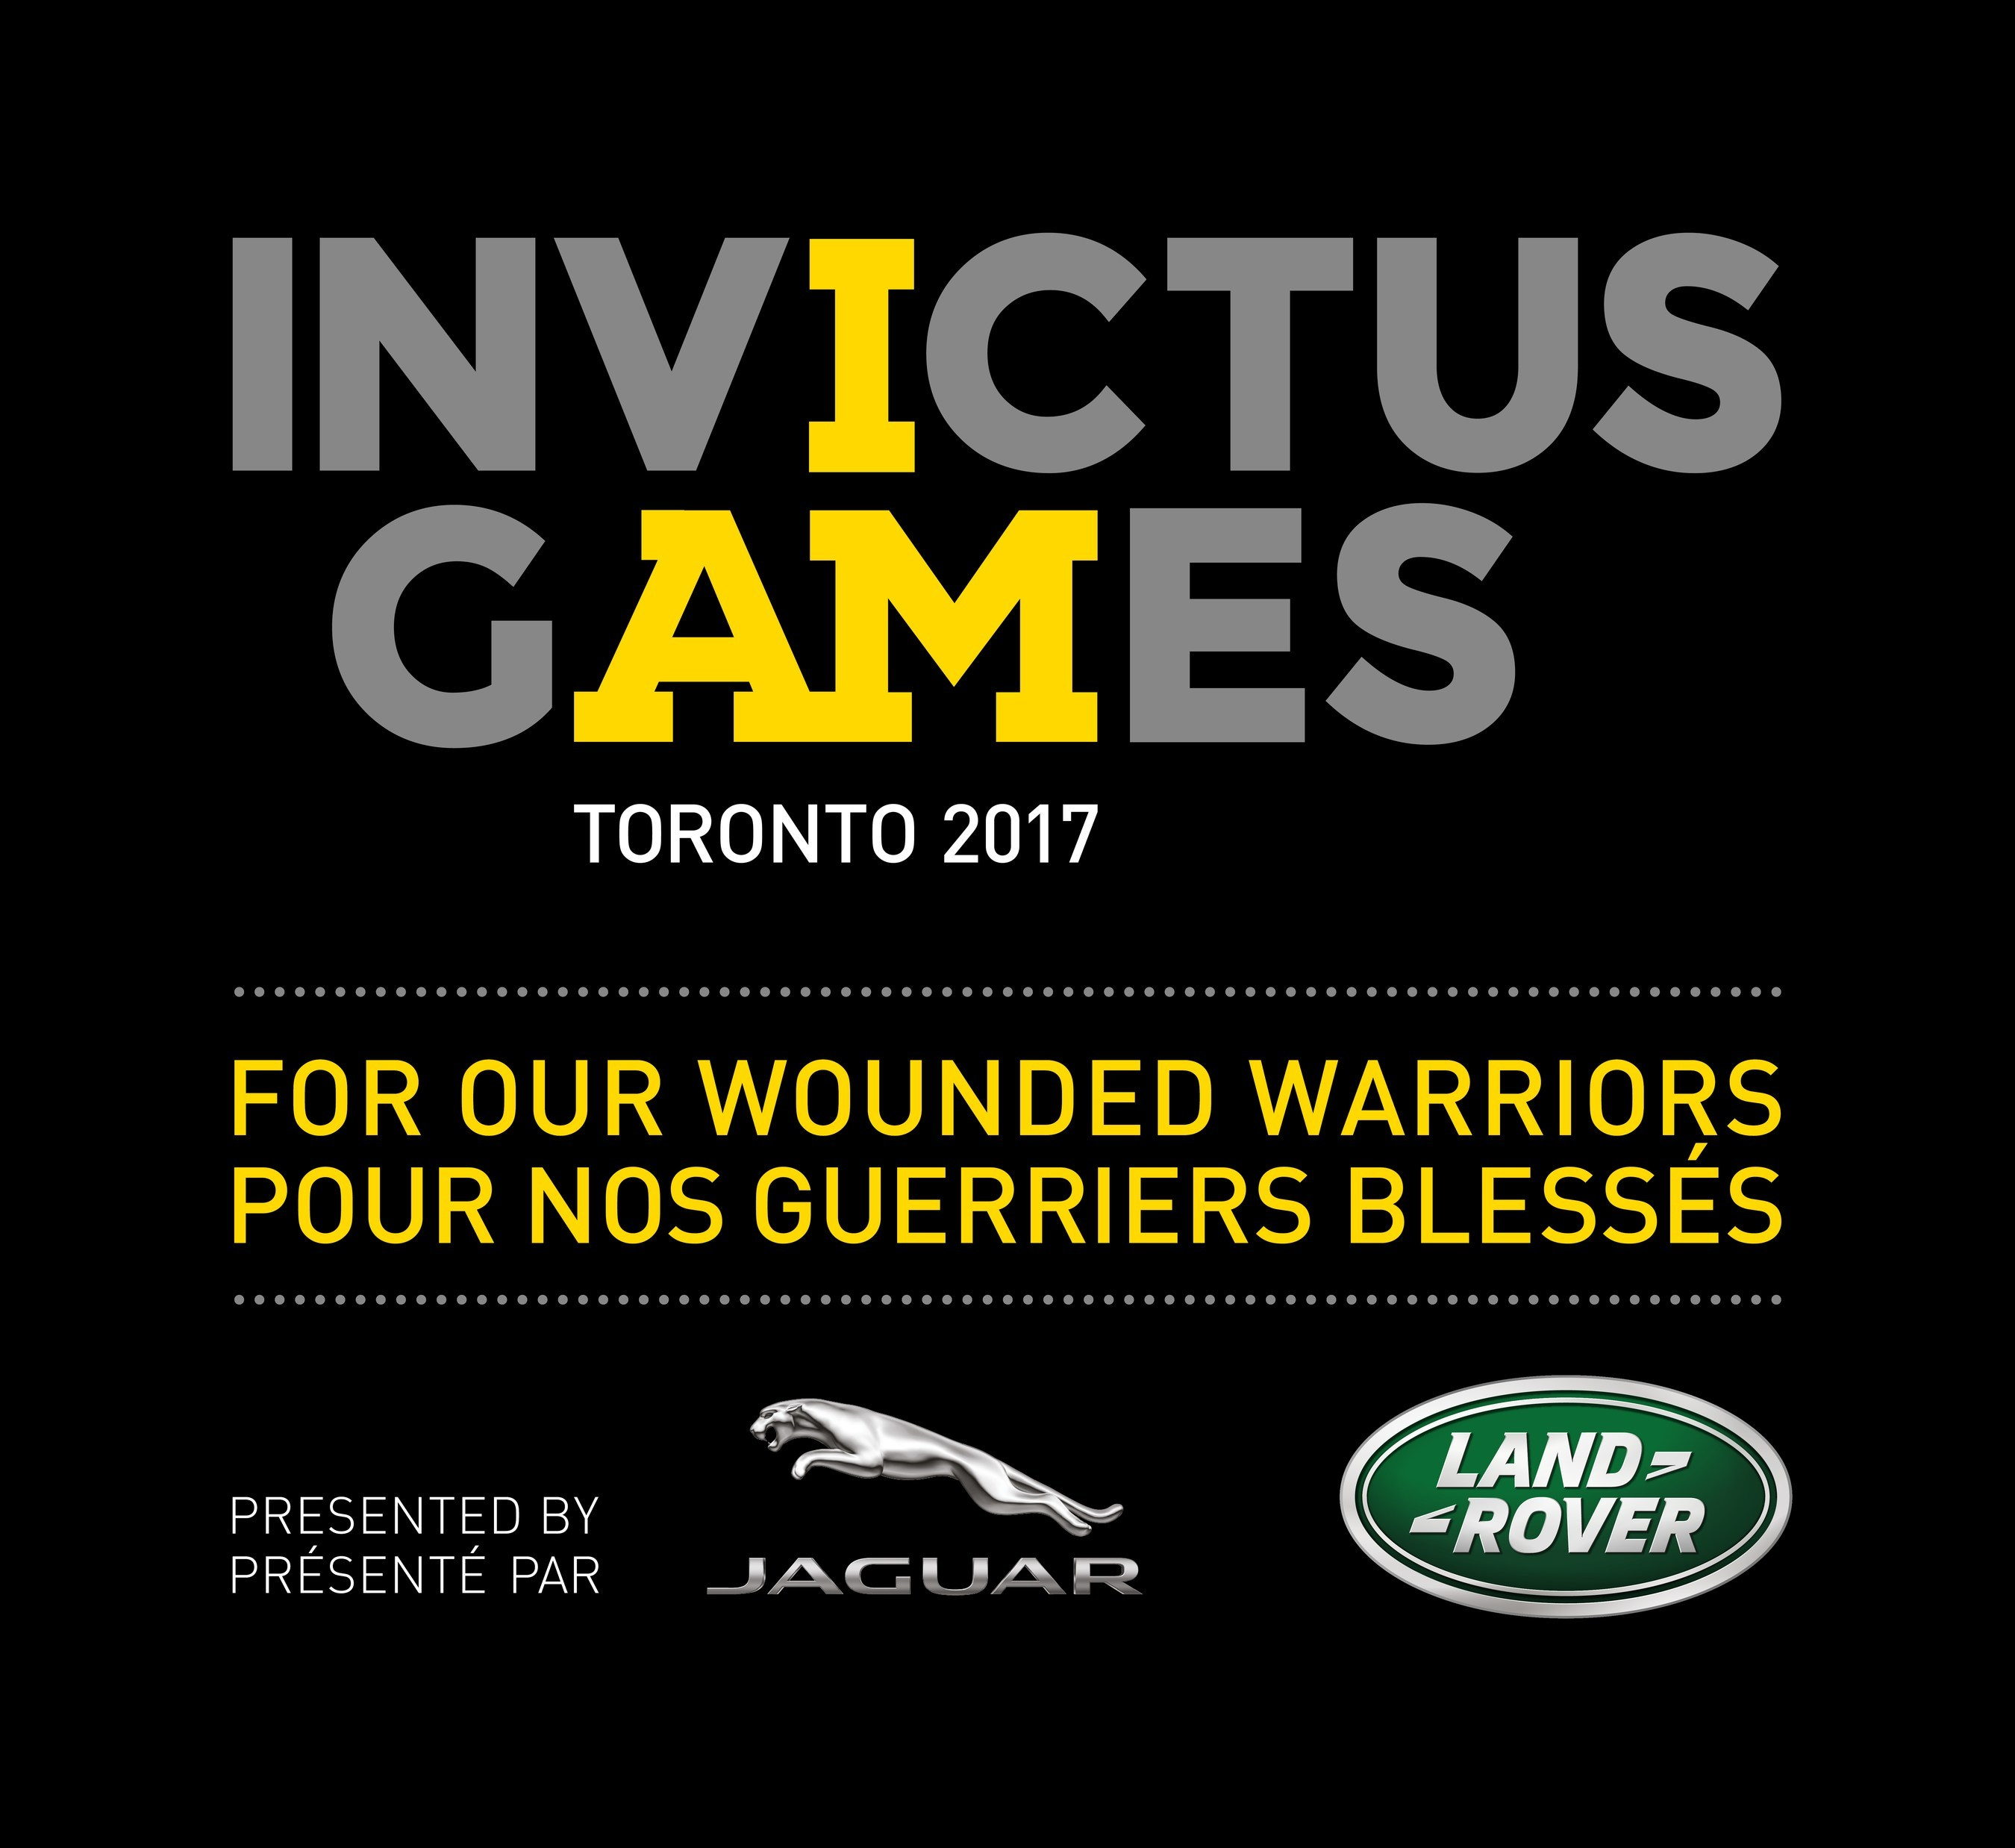 Invictus_Games_Toronto_2017_Tickets_on_Sale_for_Prince_Harry_s_I.jpg